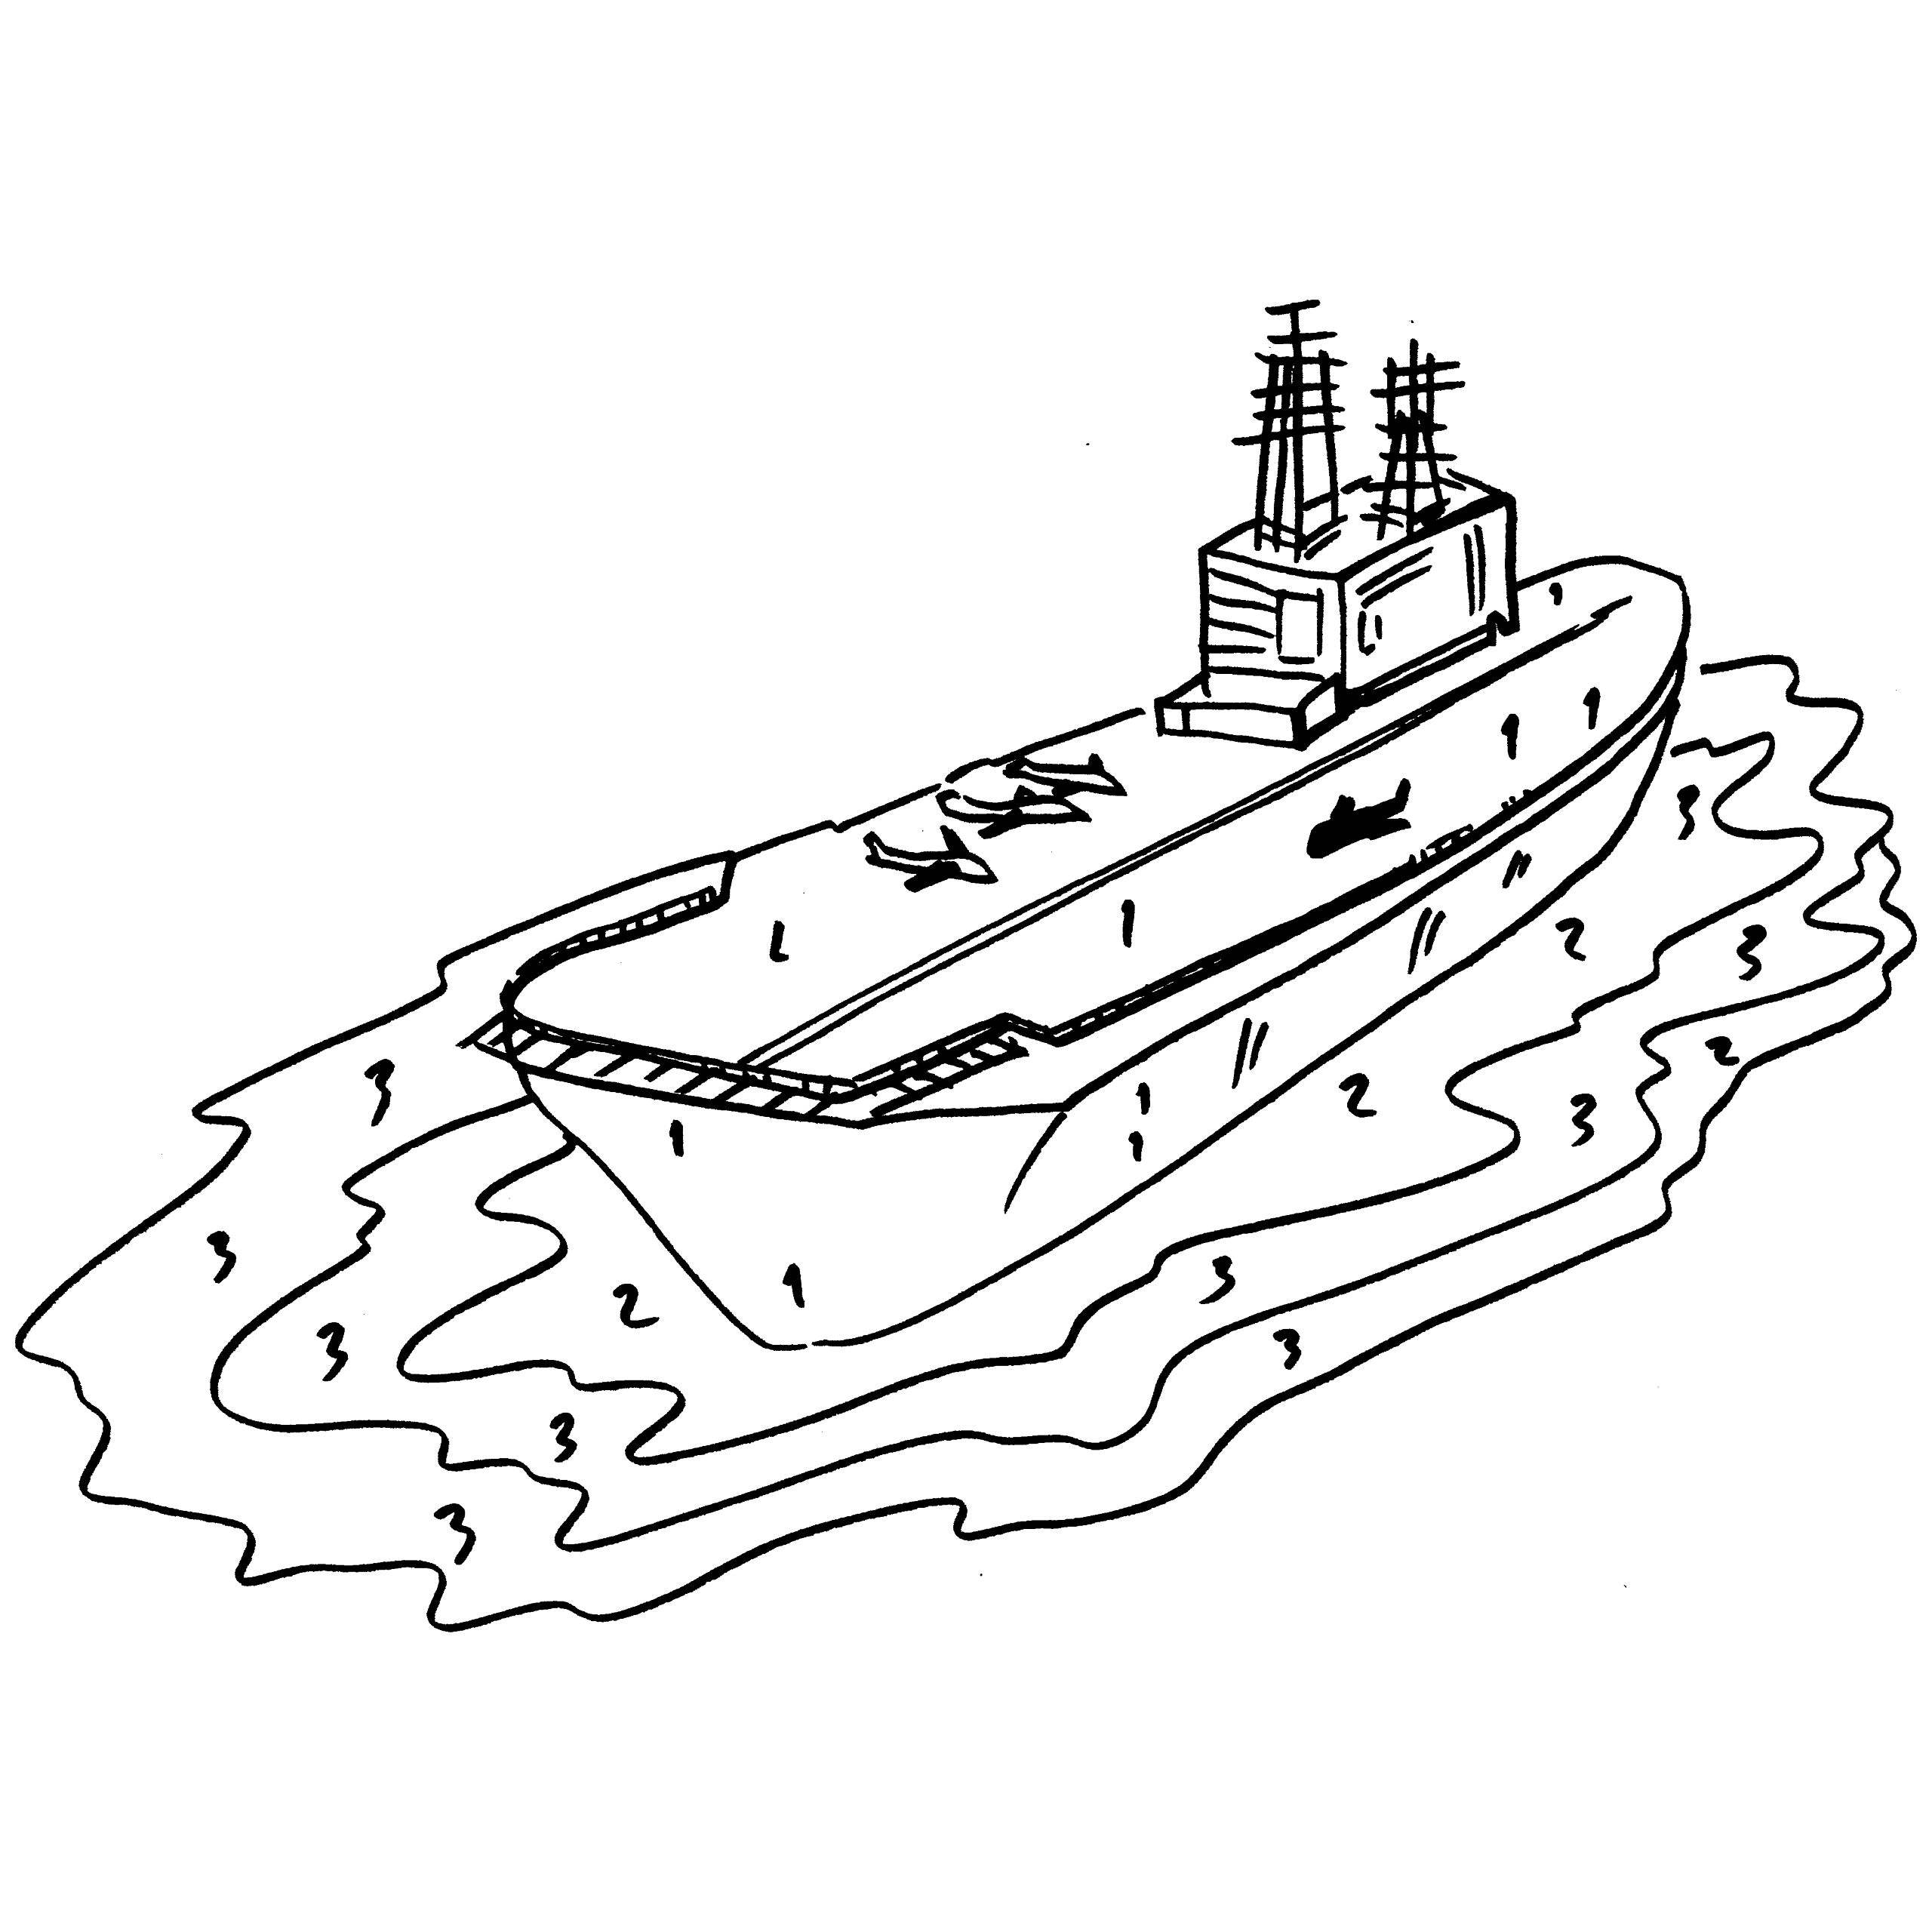 2560x2560 Inspiration Printable Military Aircraft Carrier Coloring Sheet